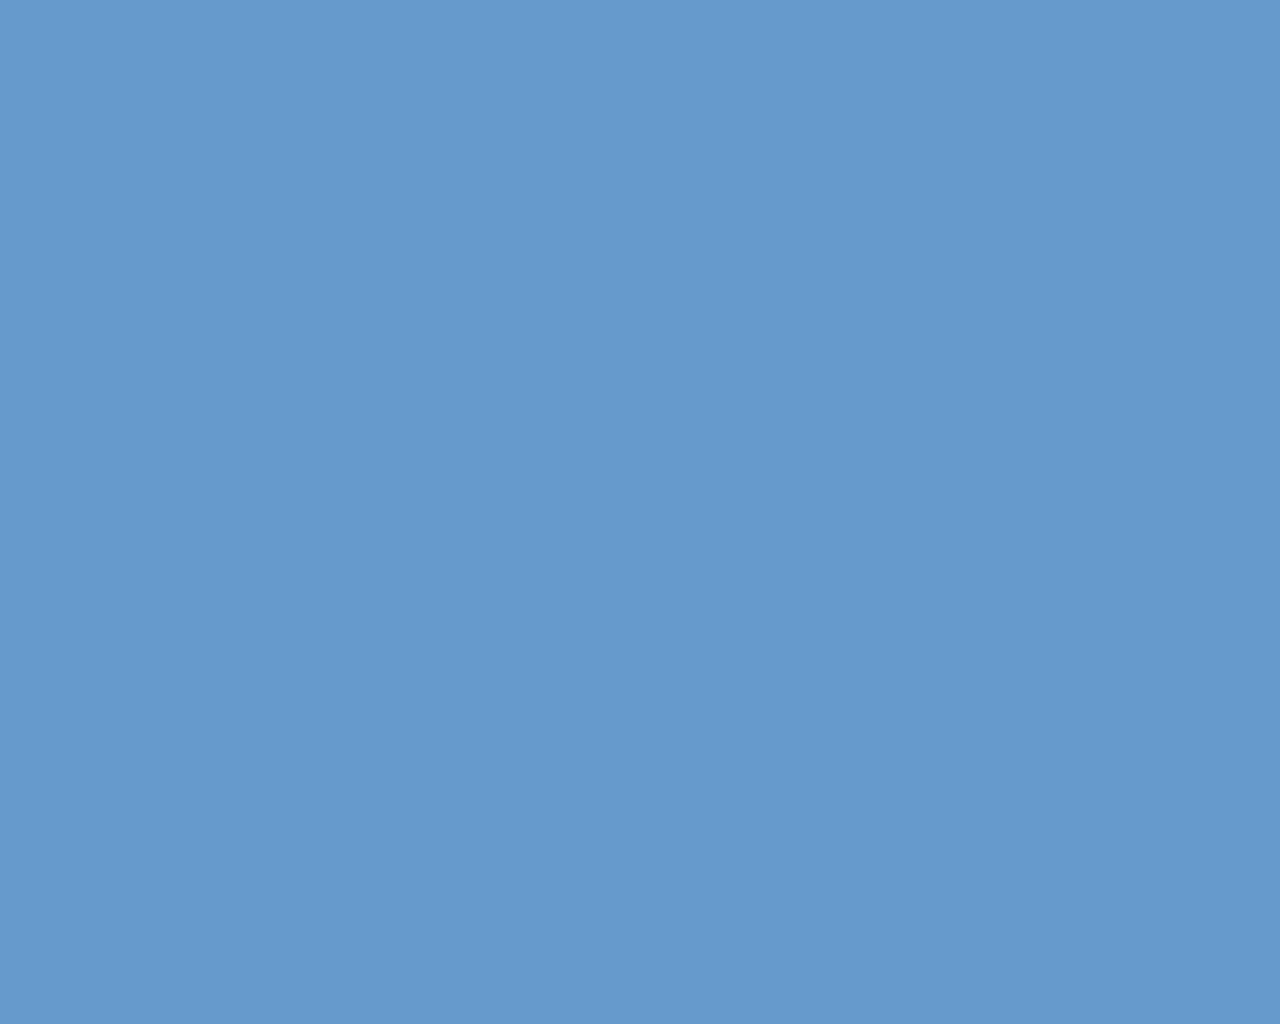 1280x1024 Blue-gray Solid Color Background